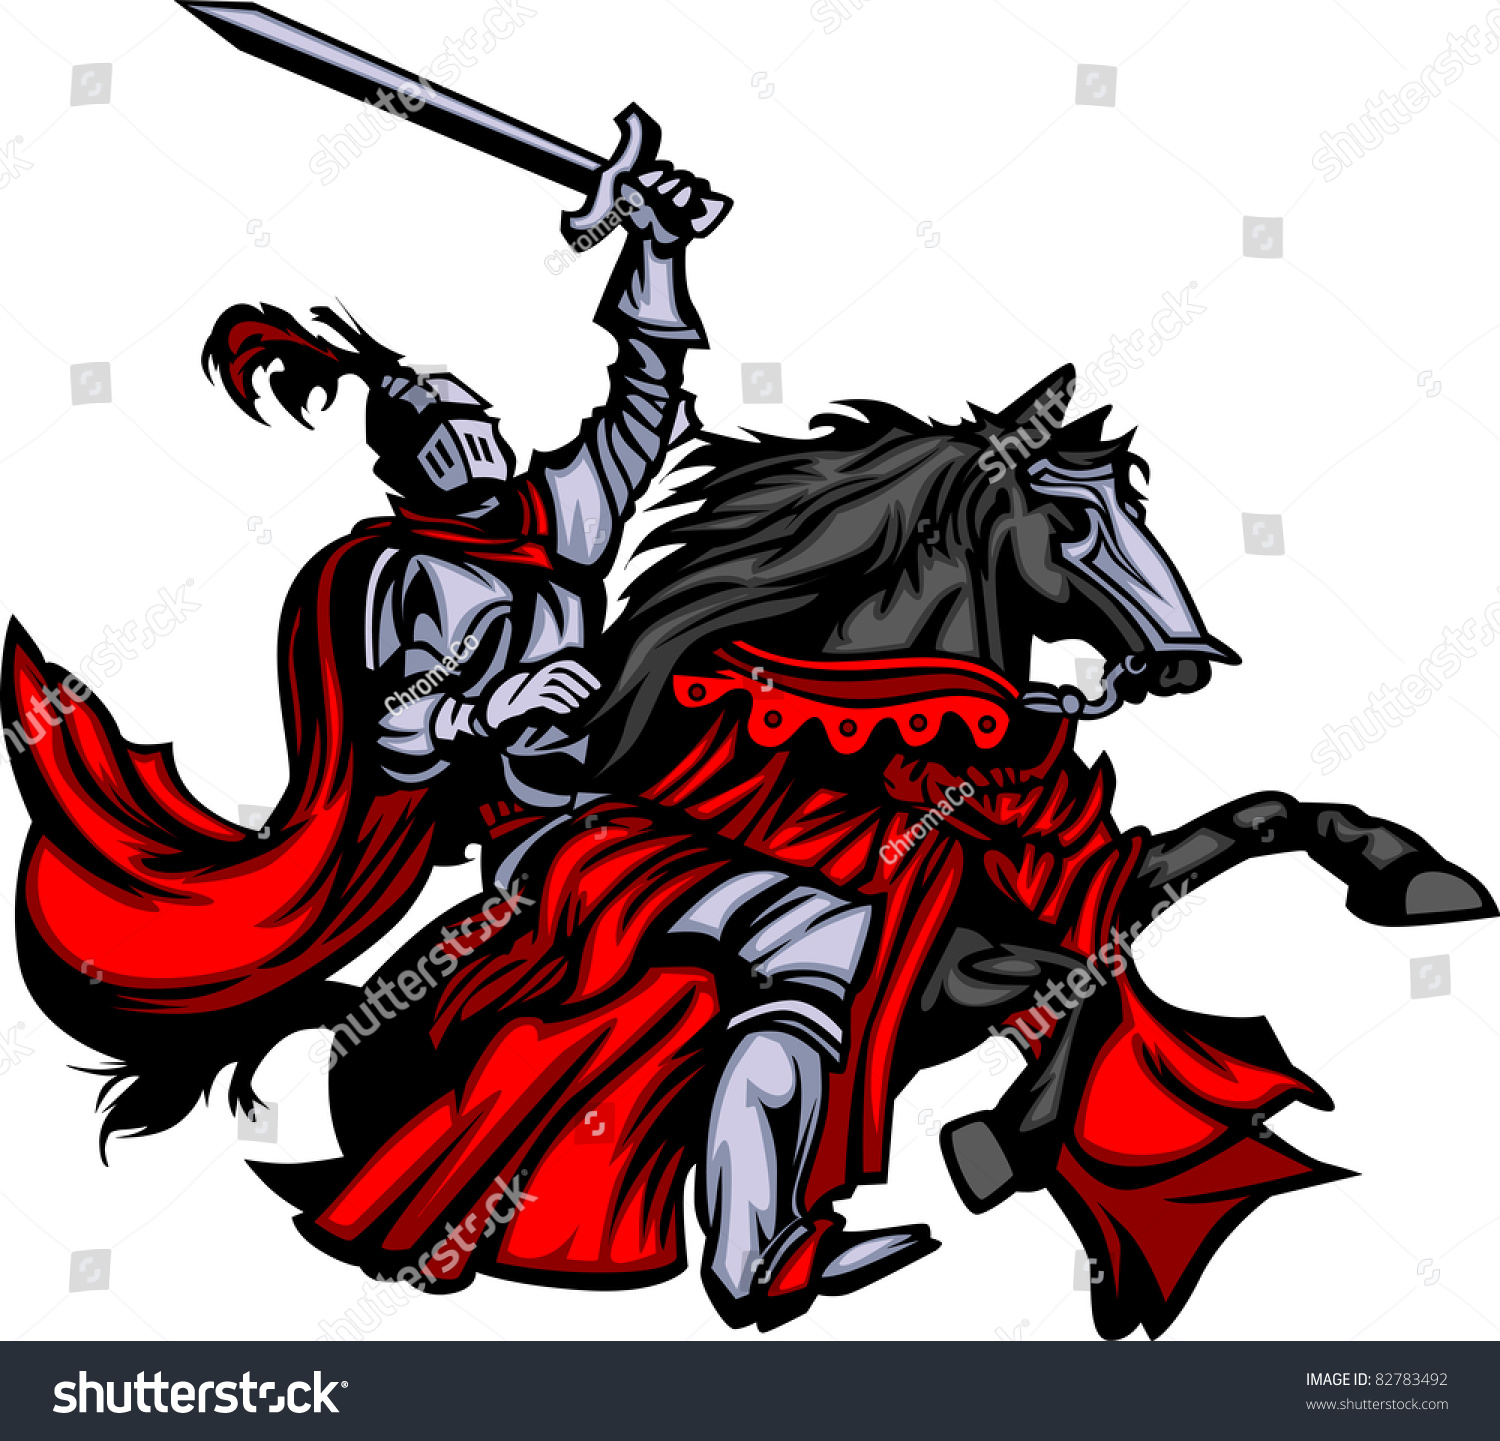 Knight Mascot On Horse Stock Vector Illustration 82783492 ...